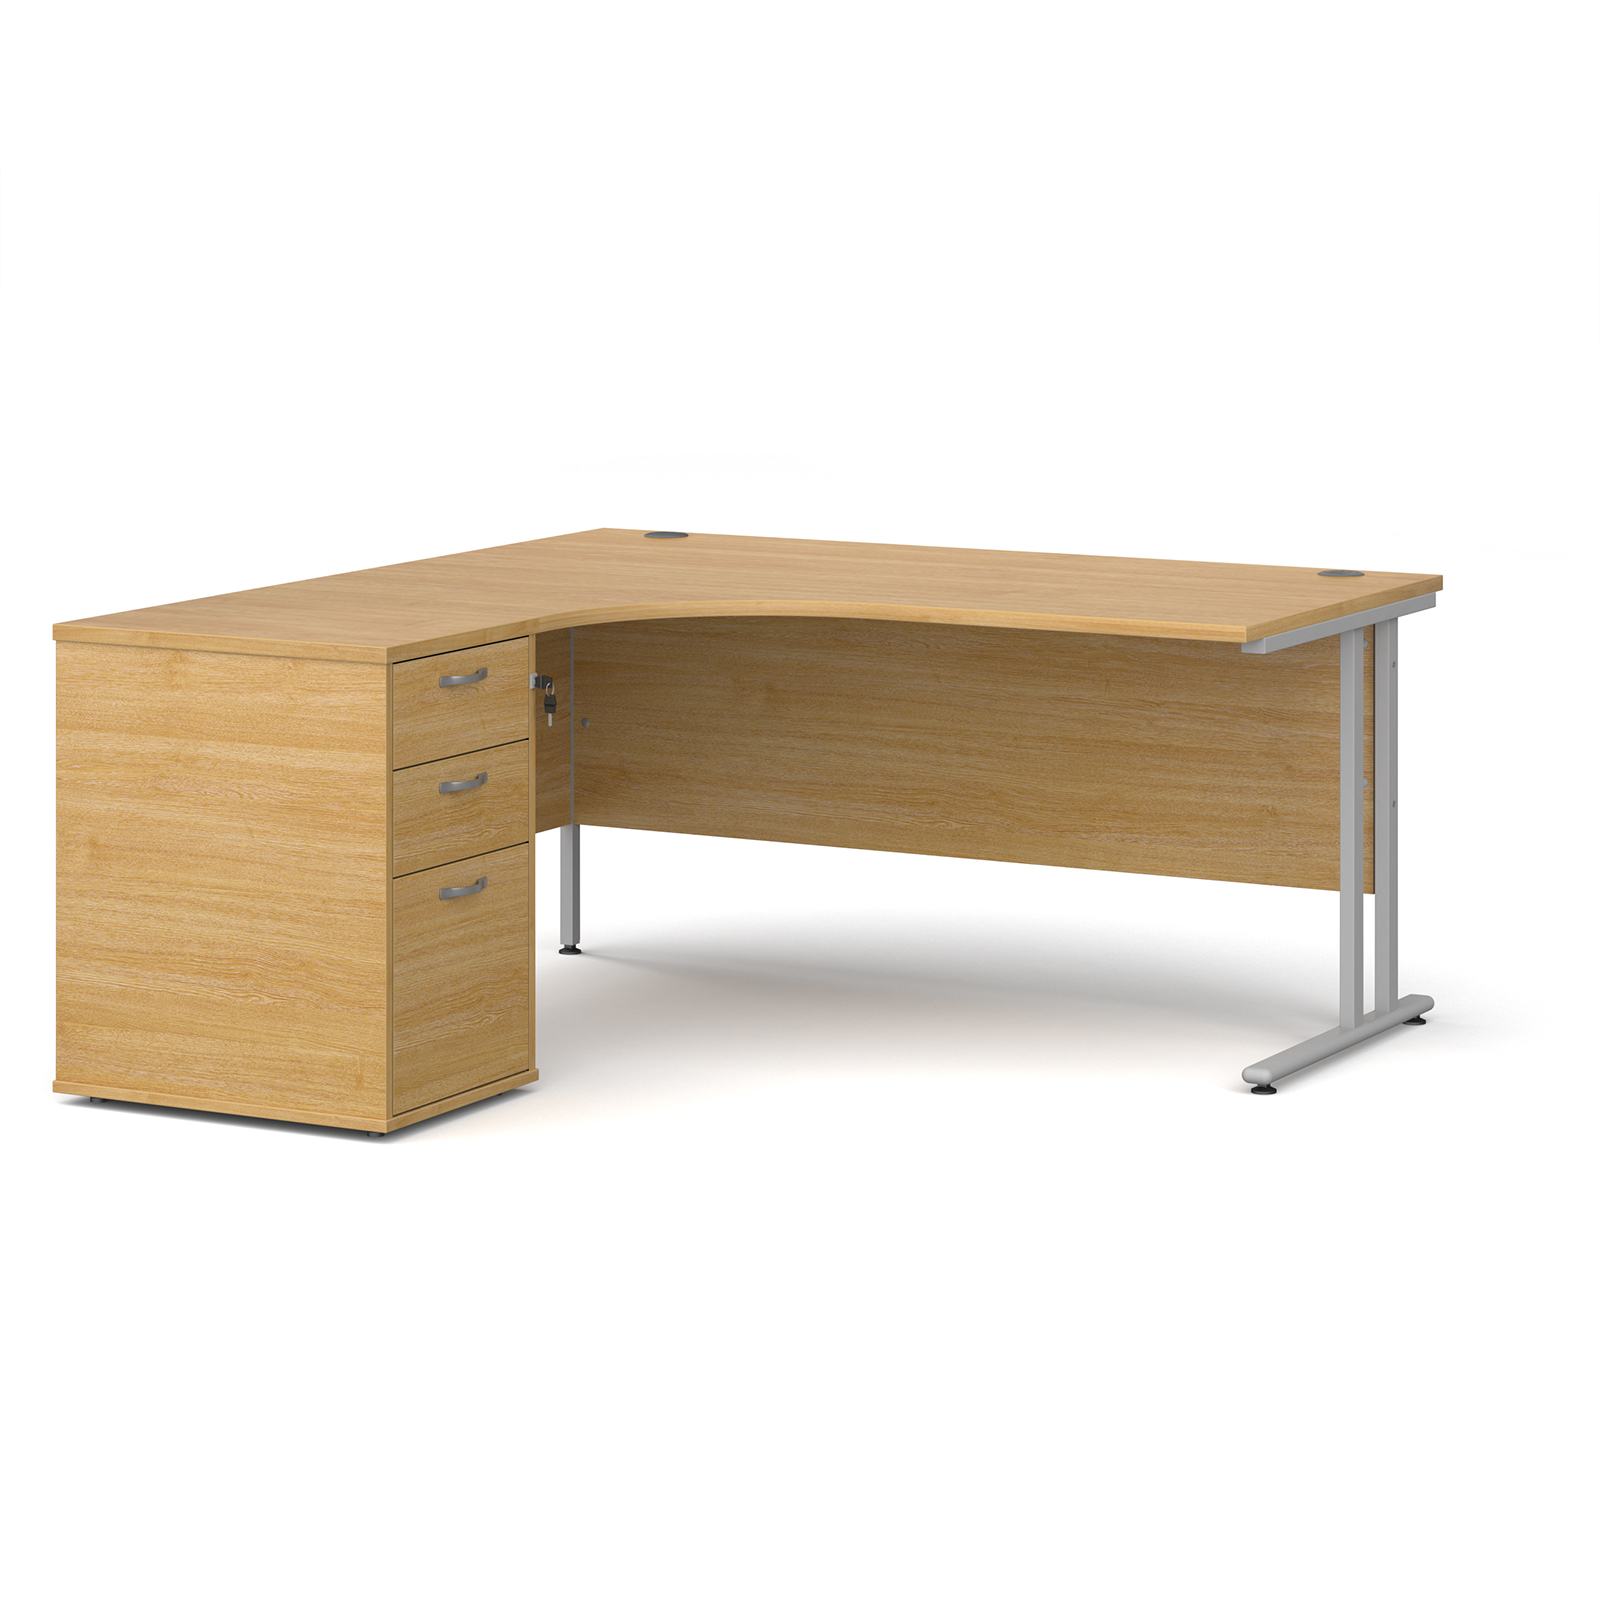 Left Handed Maestro 25 left hand ergonomic desk 1600mm with silver cantilever frame and desk high pedestal - oak